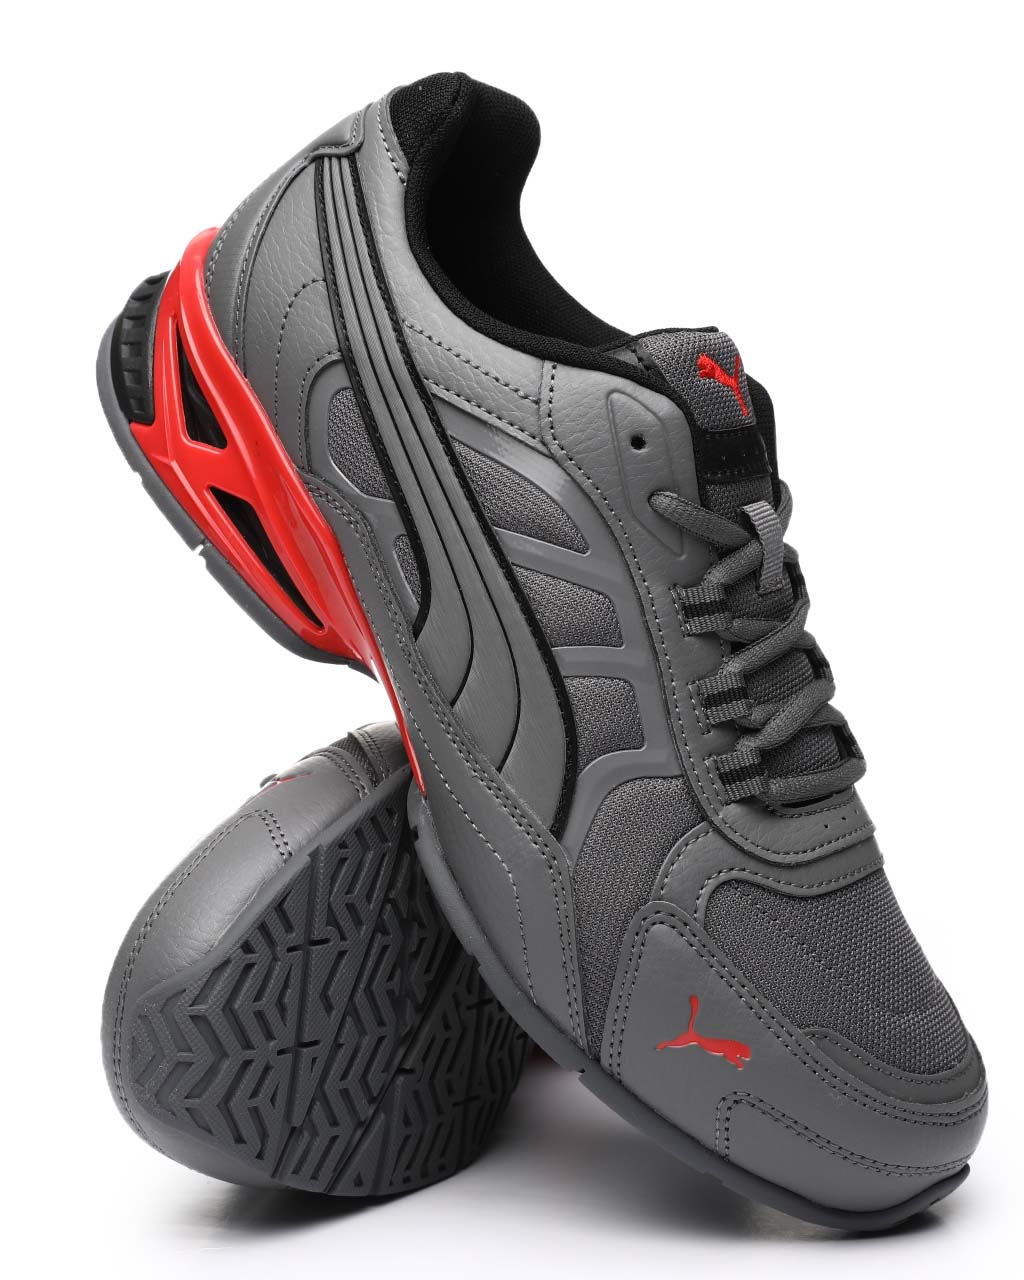 Buy Respin Sneakers Men's Footwear from Puma. Find Puma fashion ...